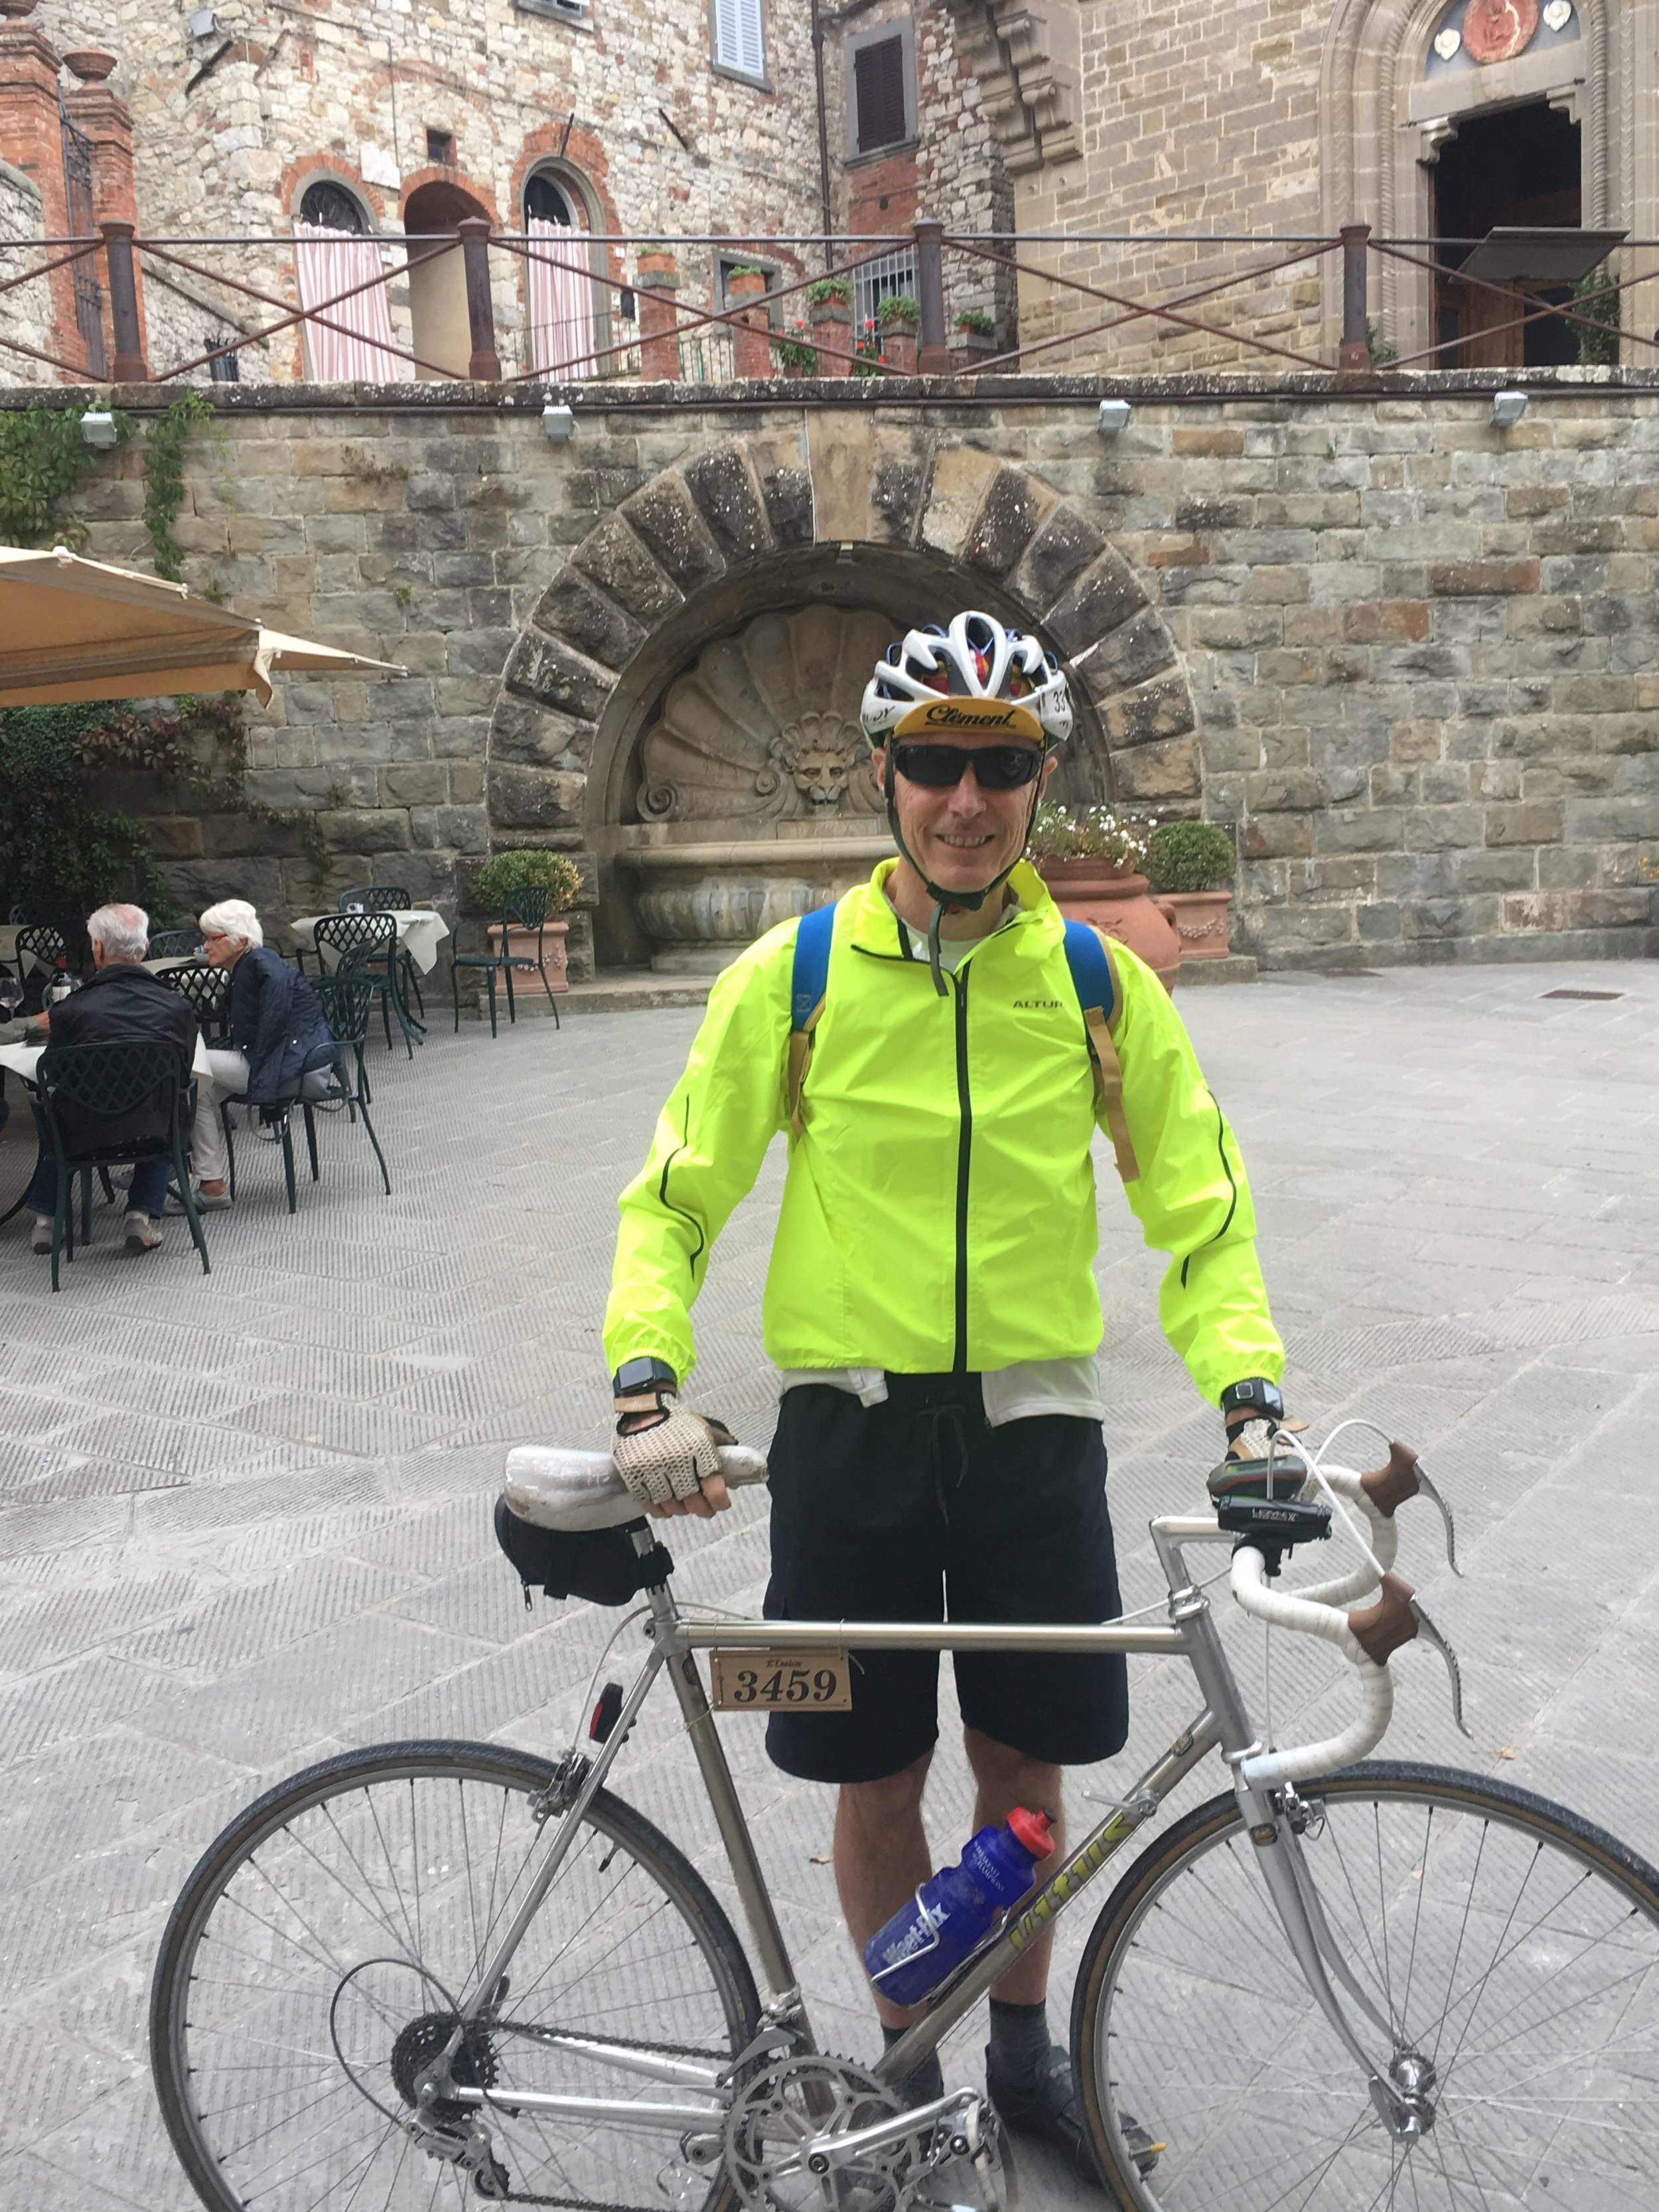 My previous visit to Radda was four nights earlier at 20:30 near the end of L' Eroica